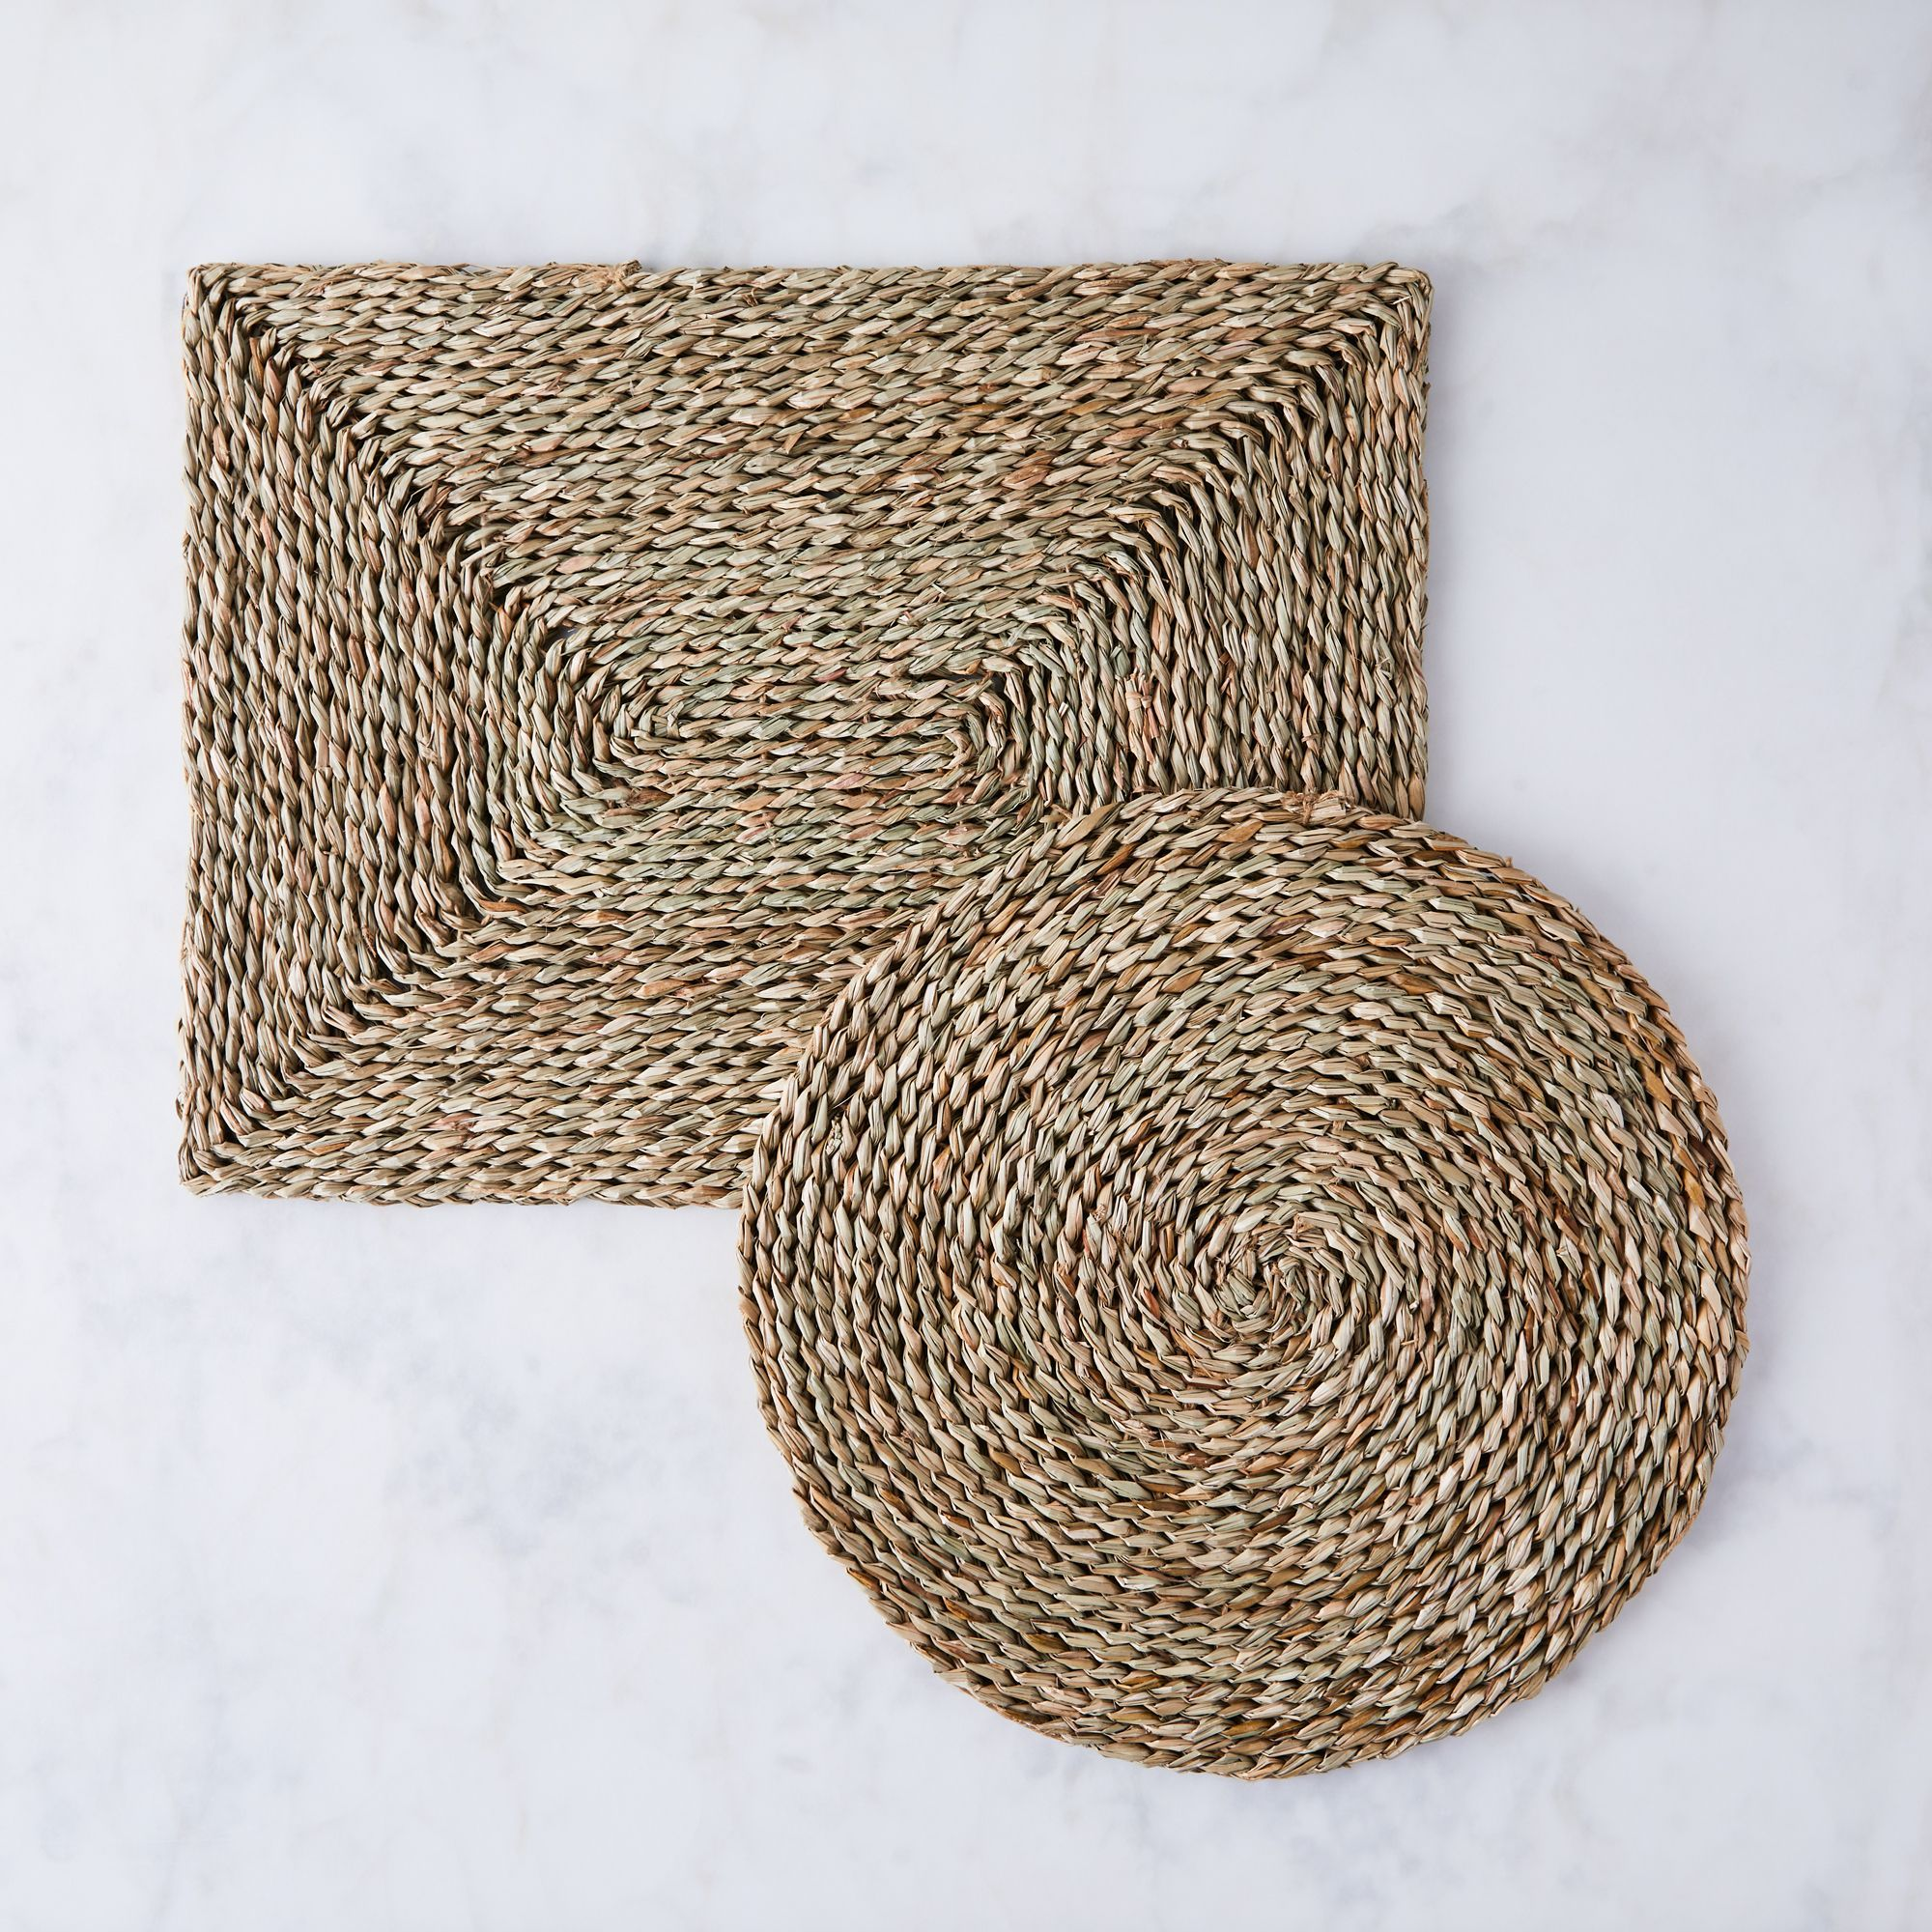 Woven Seagrass Placemat Set Of 4 Wicker Placemats Placemats Natural Placemats